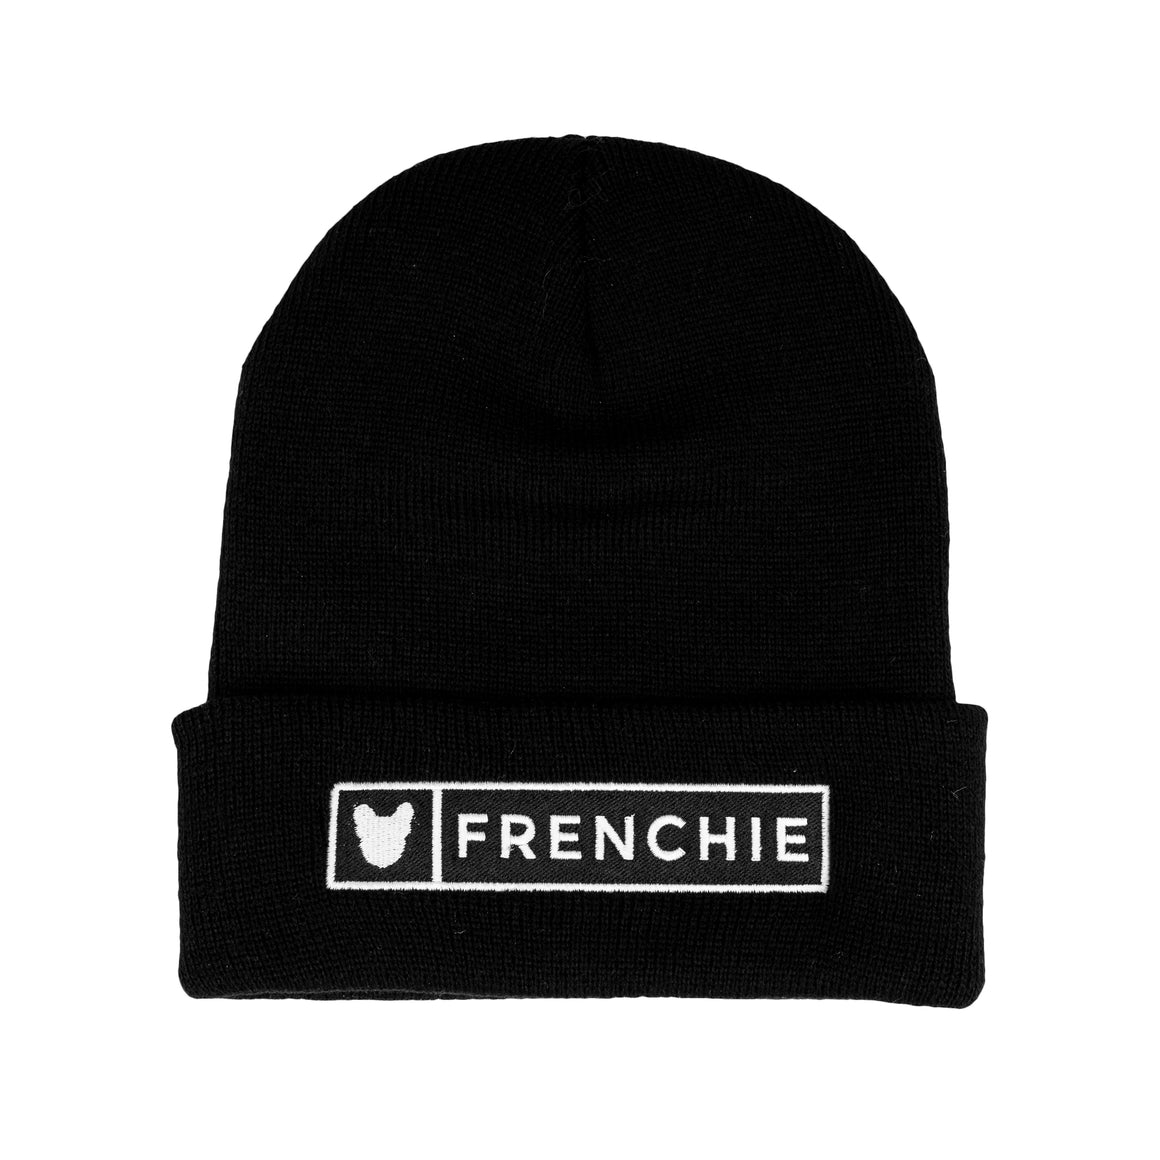 Black Frenchie Beanie